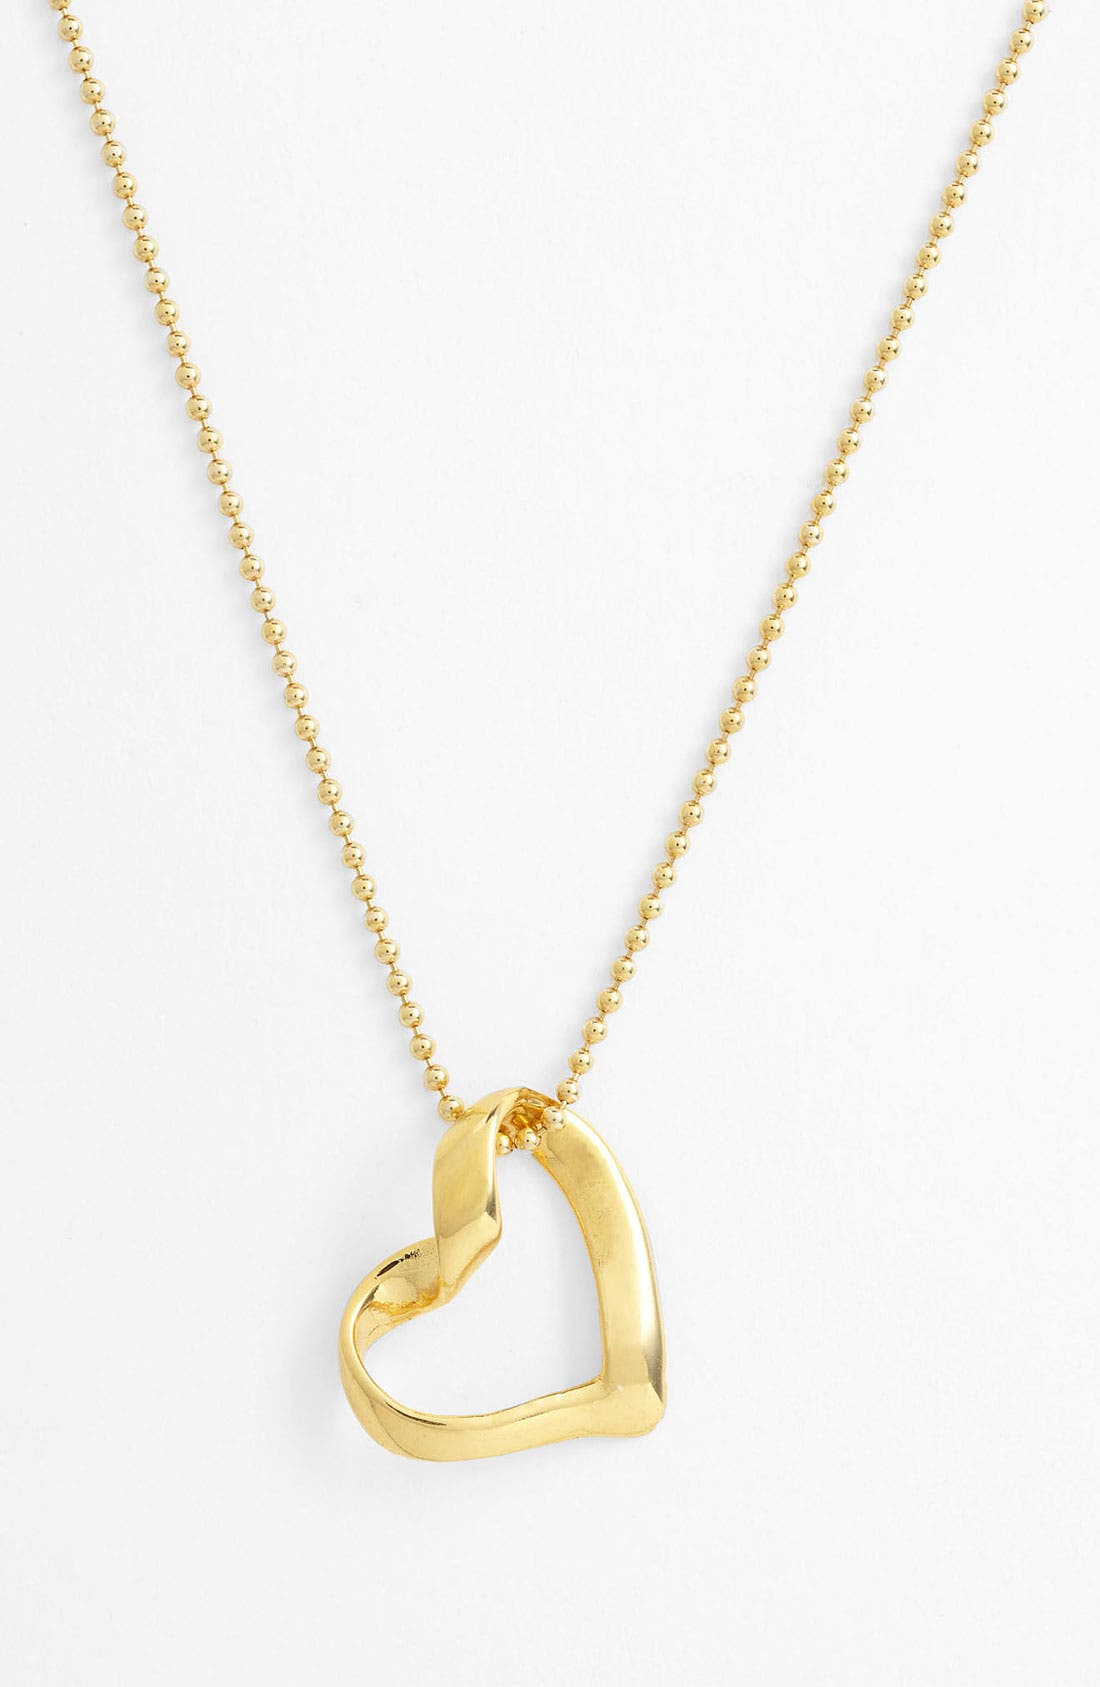 Alternate Image 1 Selected - Argento Vivo 'Love' Heart Pendant Necklace (Nordstrom Exclusive)